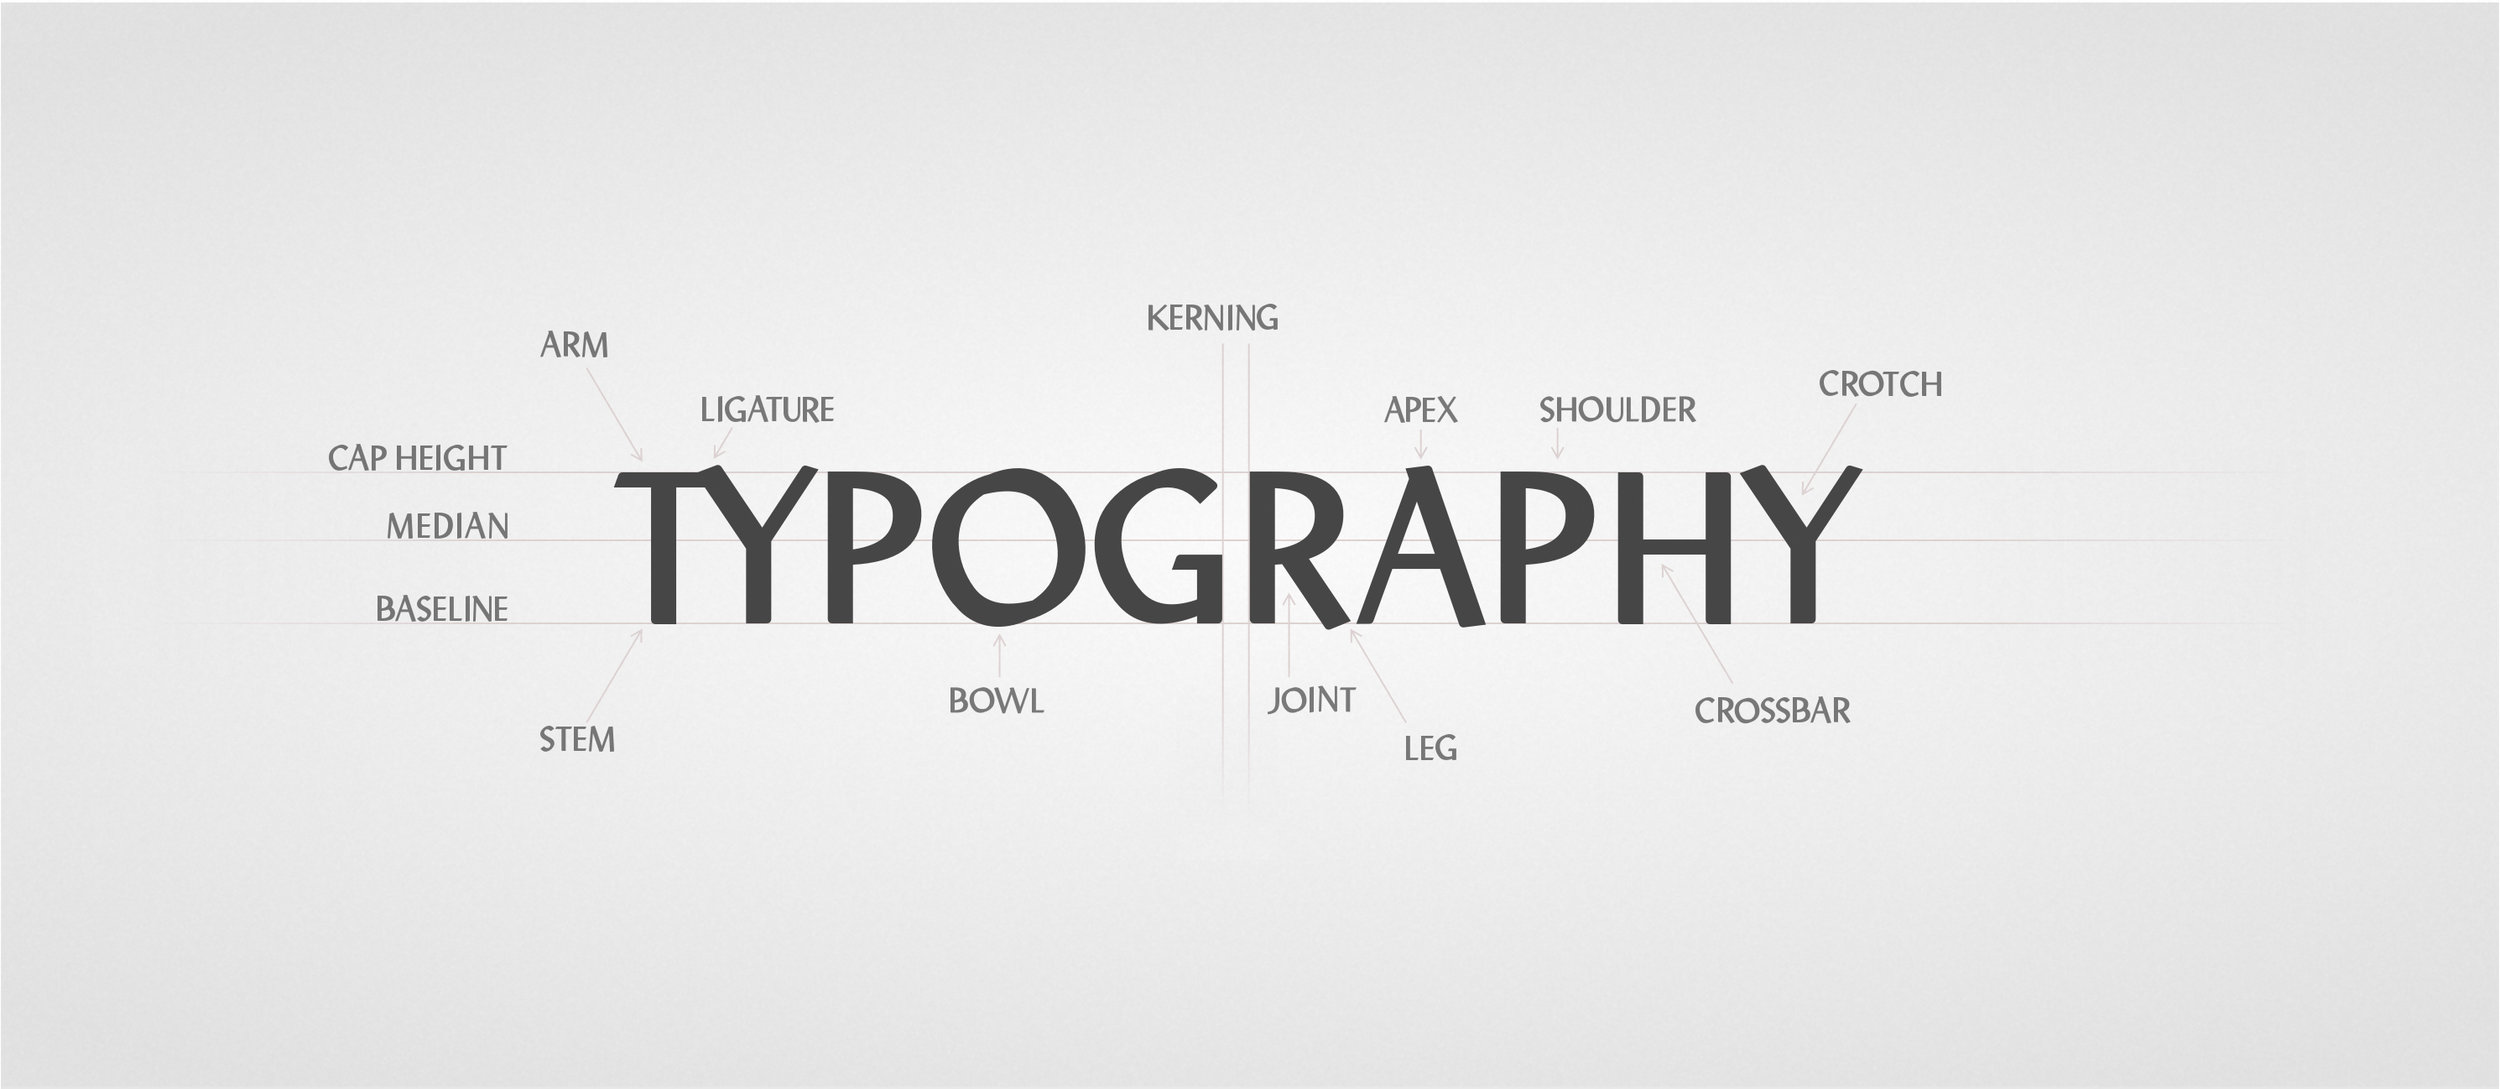 type typography anatomy font attribute design jtb jason burkholder.jpg